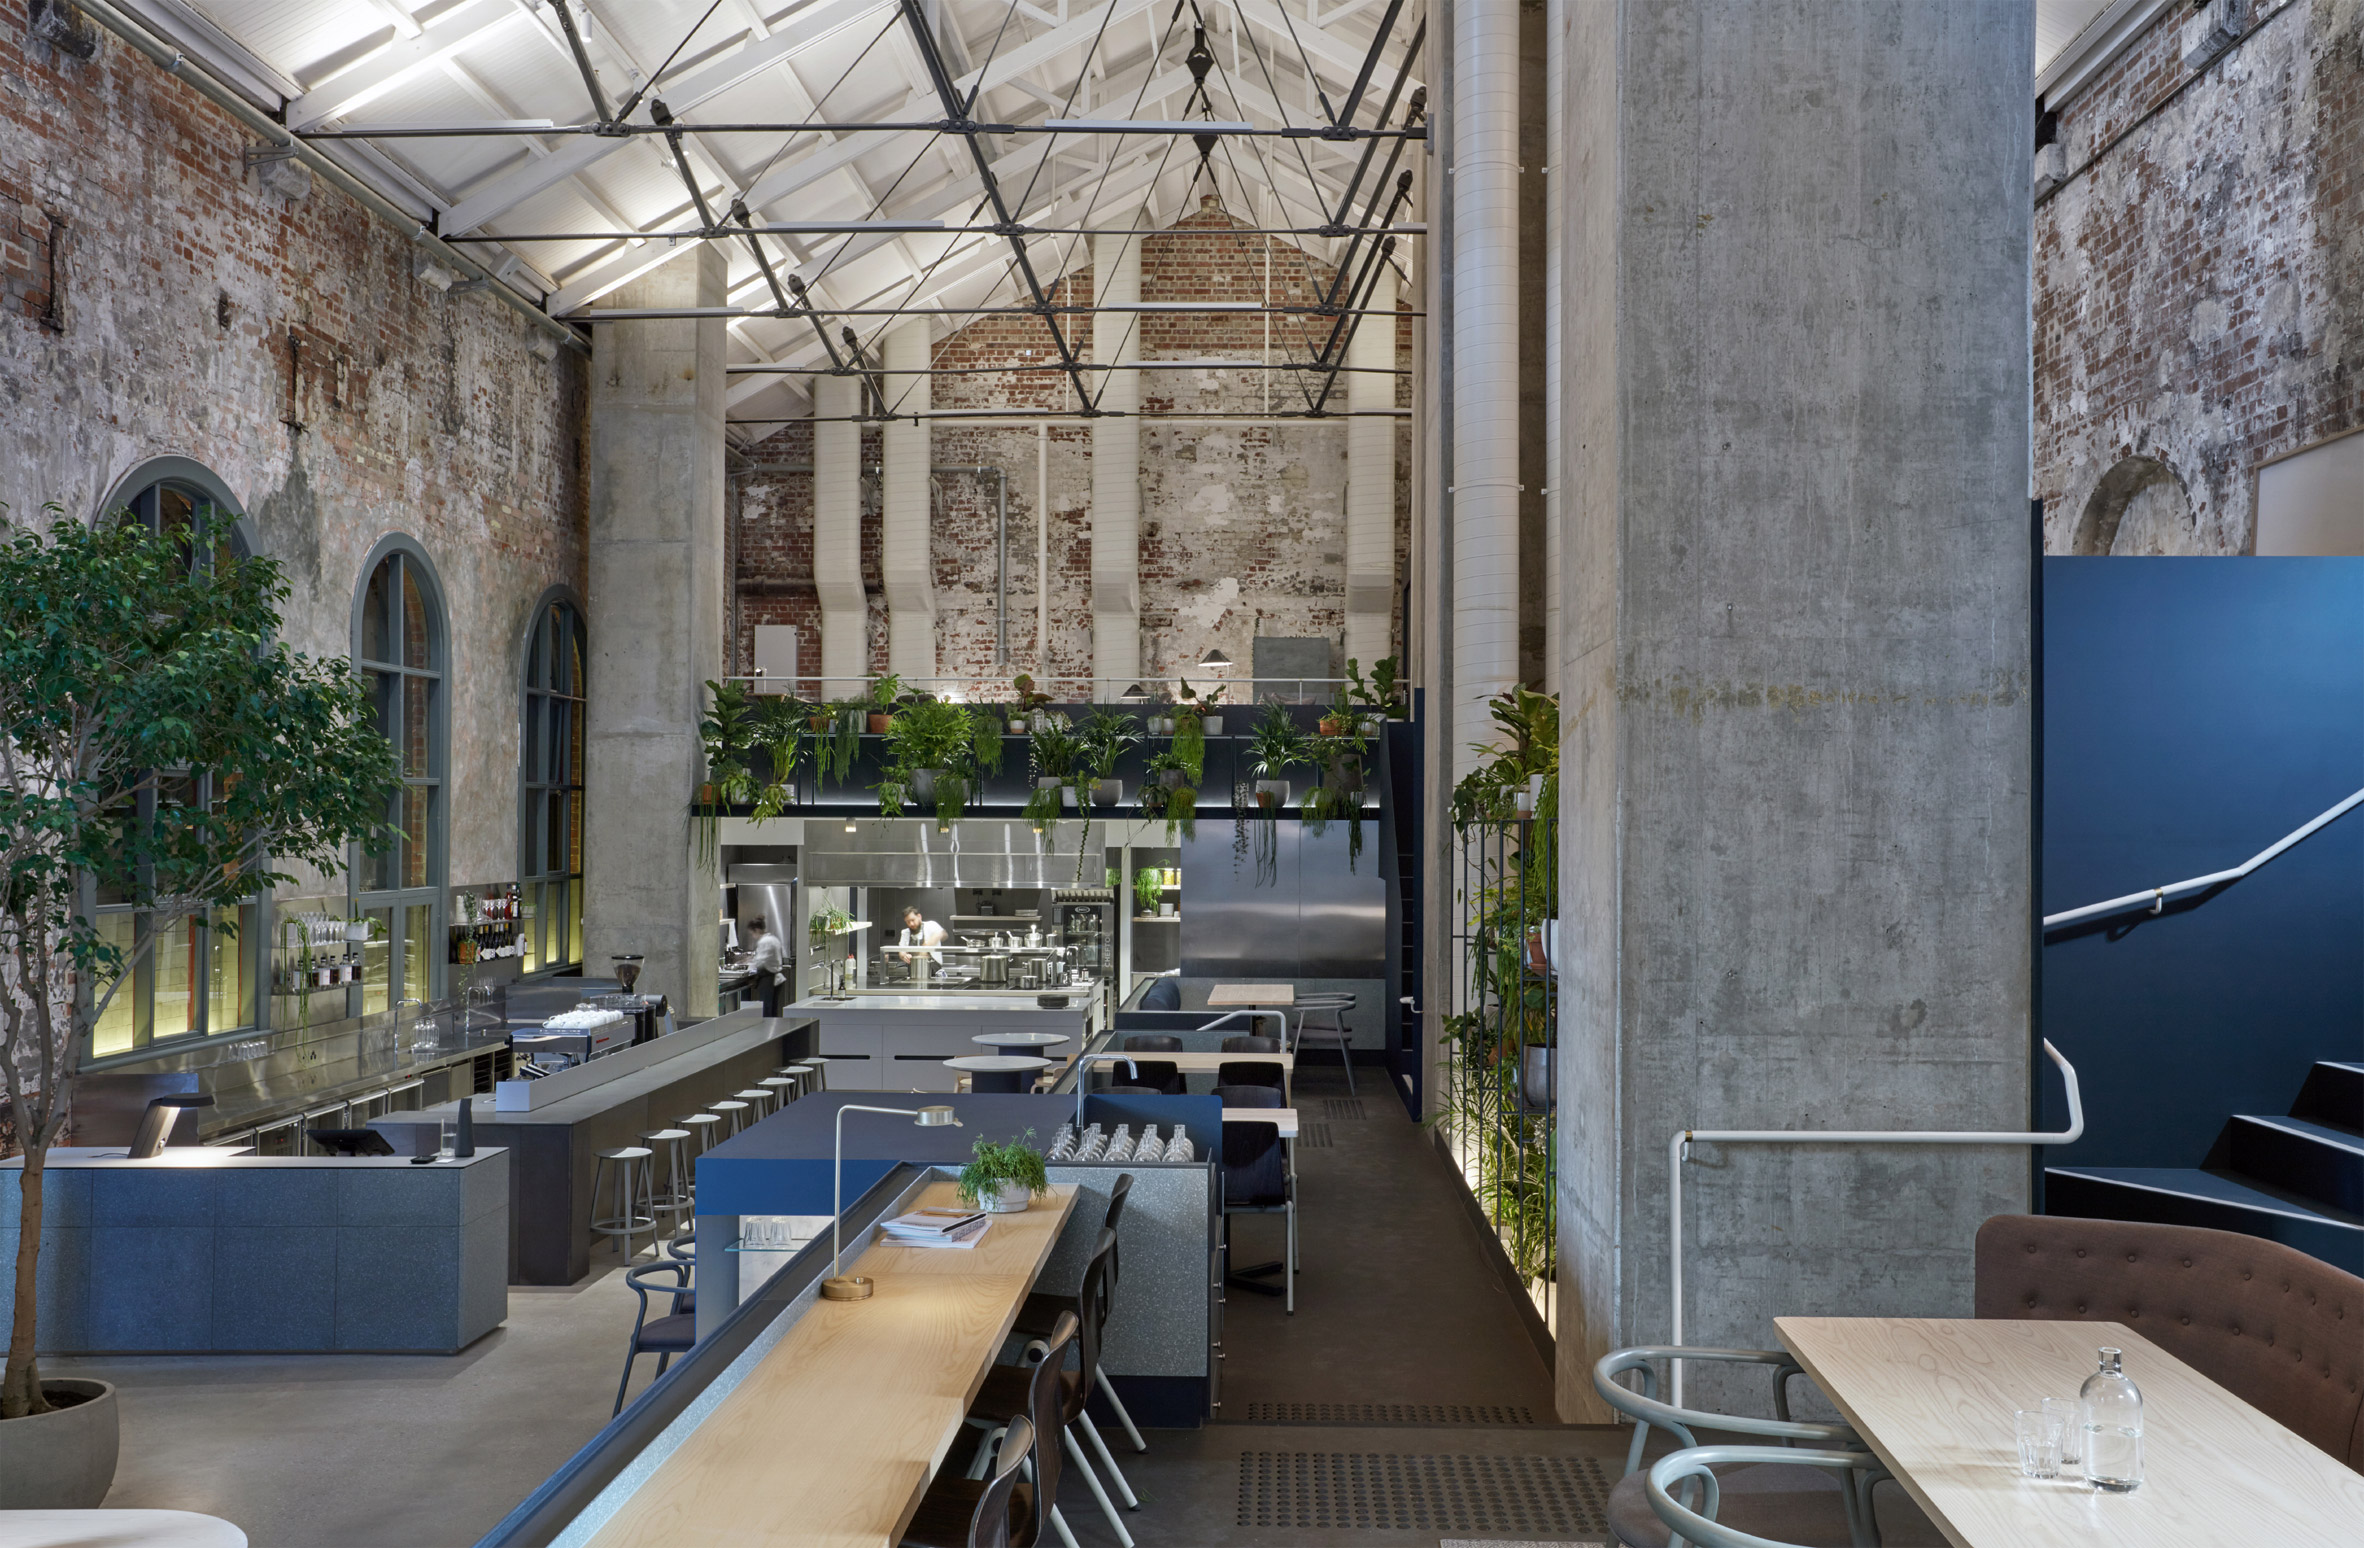 higher-ground-design-office-interior-melbourne-australia_dezeen_2364_col_6-1